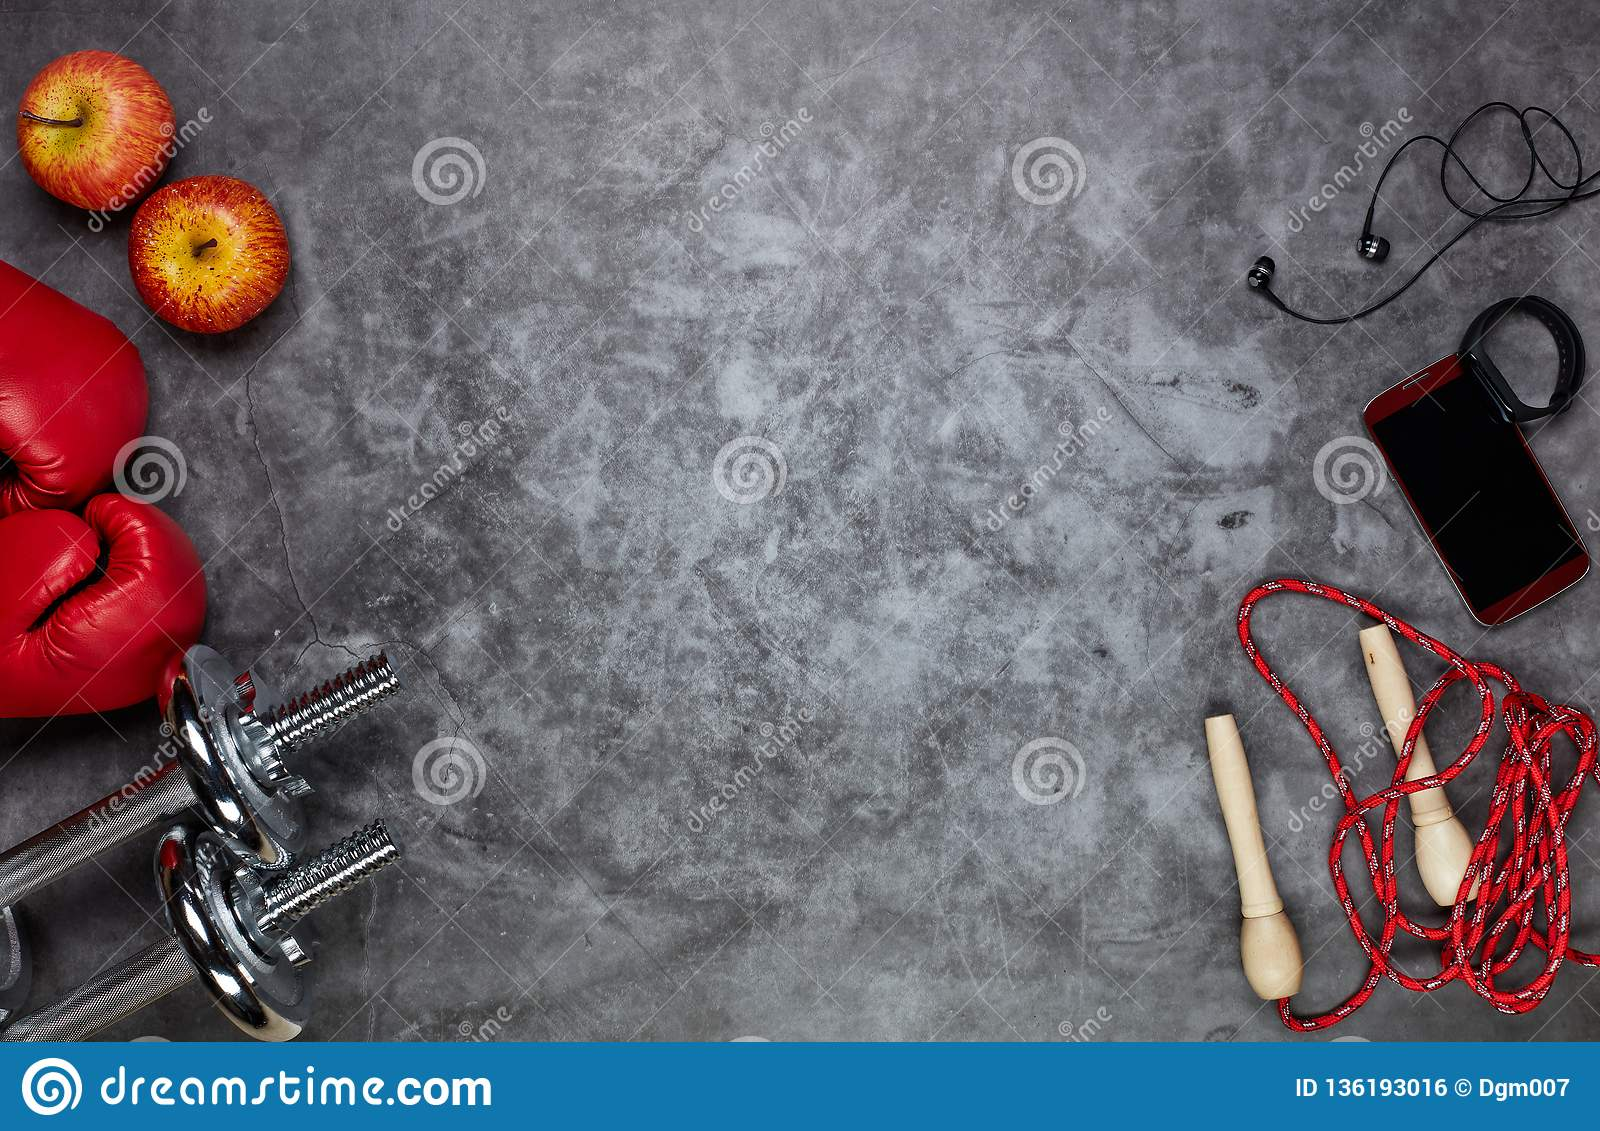 Sport Accessories. Fitness Background Stock Photo - Image of glove, equipment: 136193016